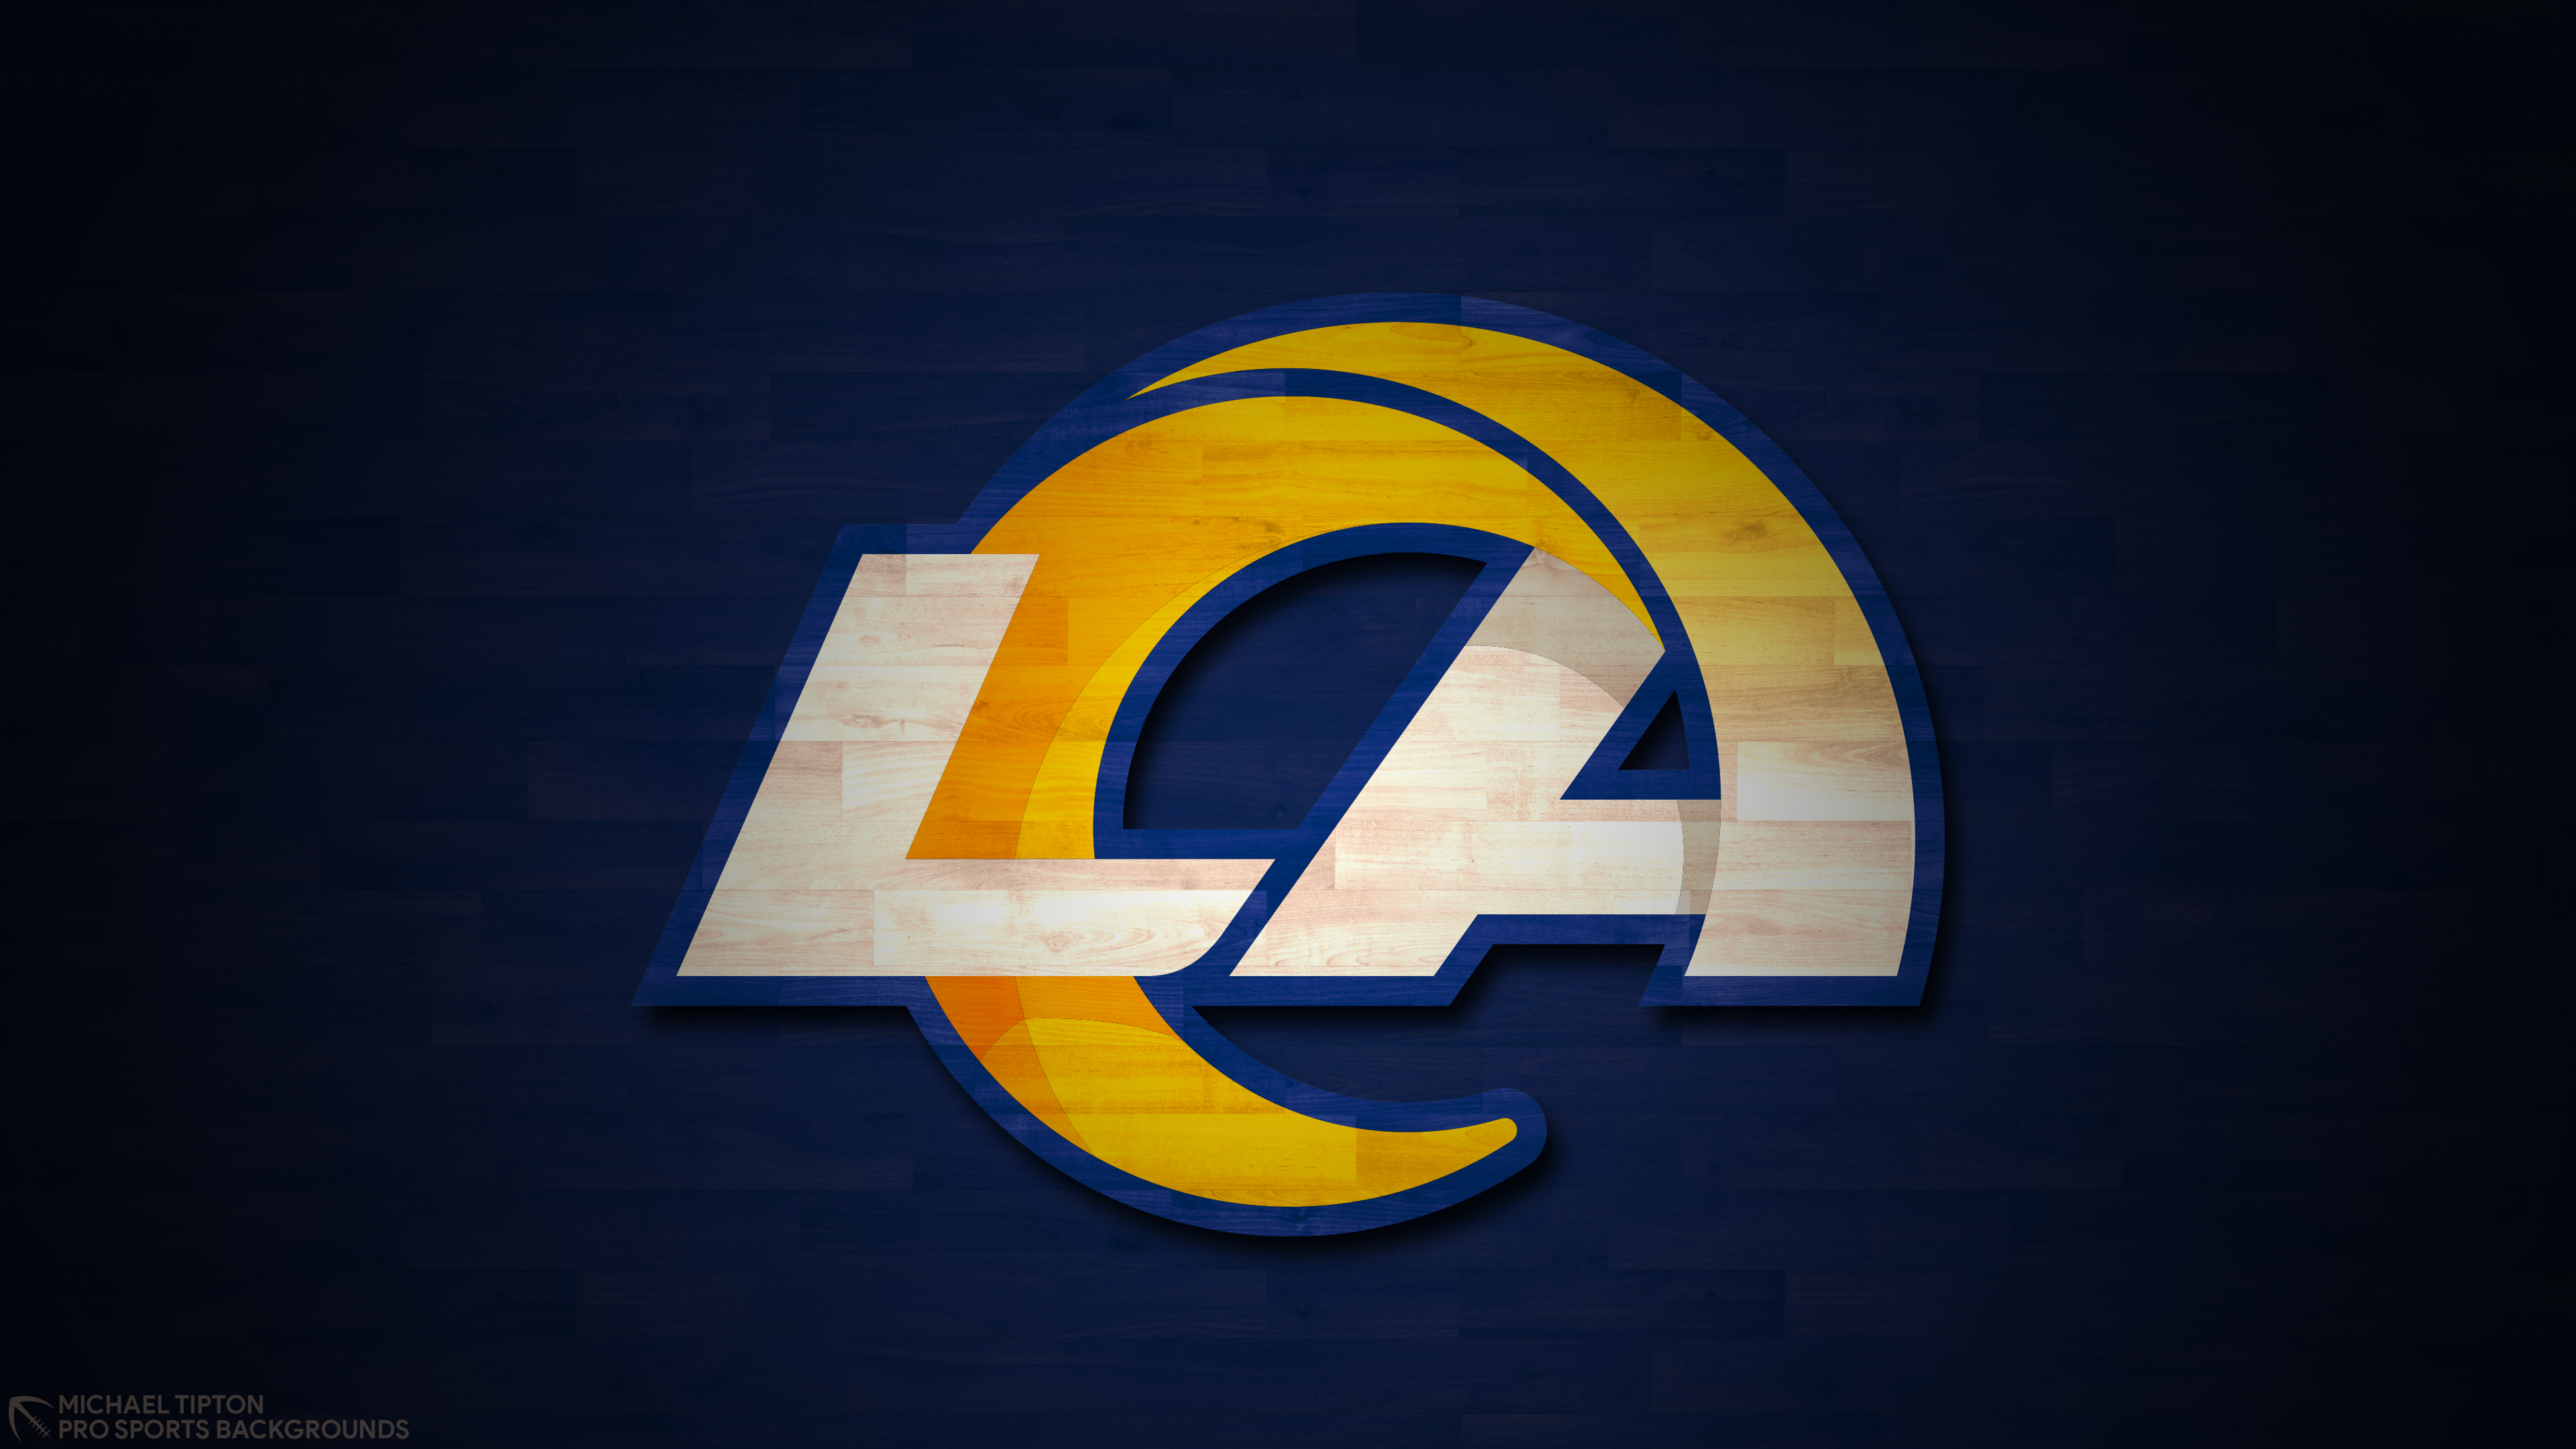 2021 Los Angeles Rams Wallpapers Pro Sports Backgrounds 3840x2160